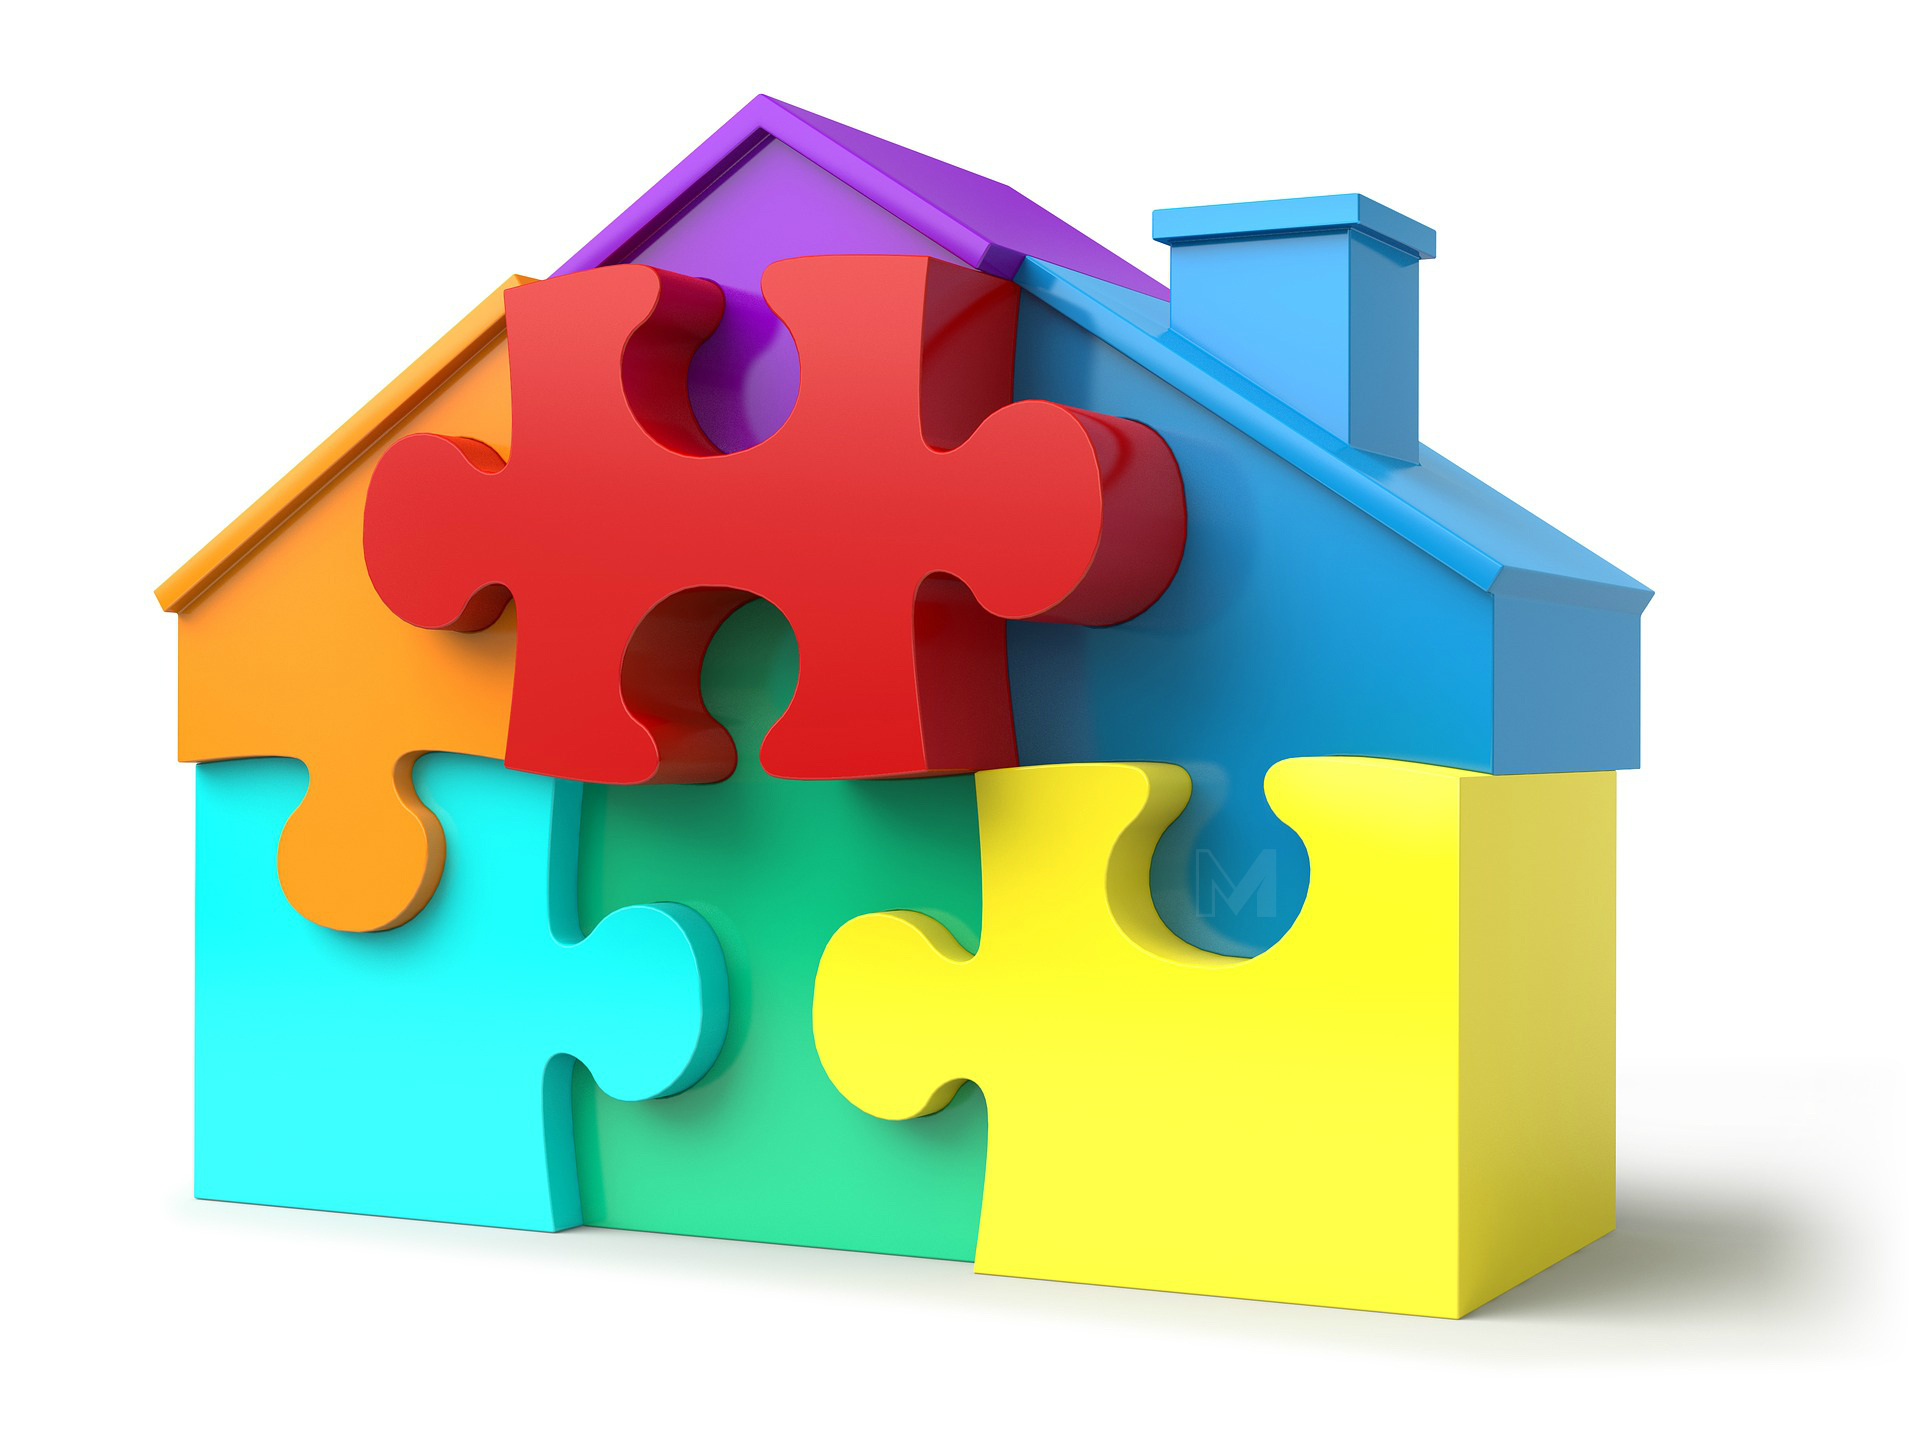 Pieces of the mortgage puzzle